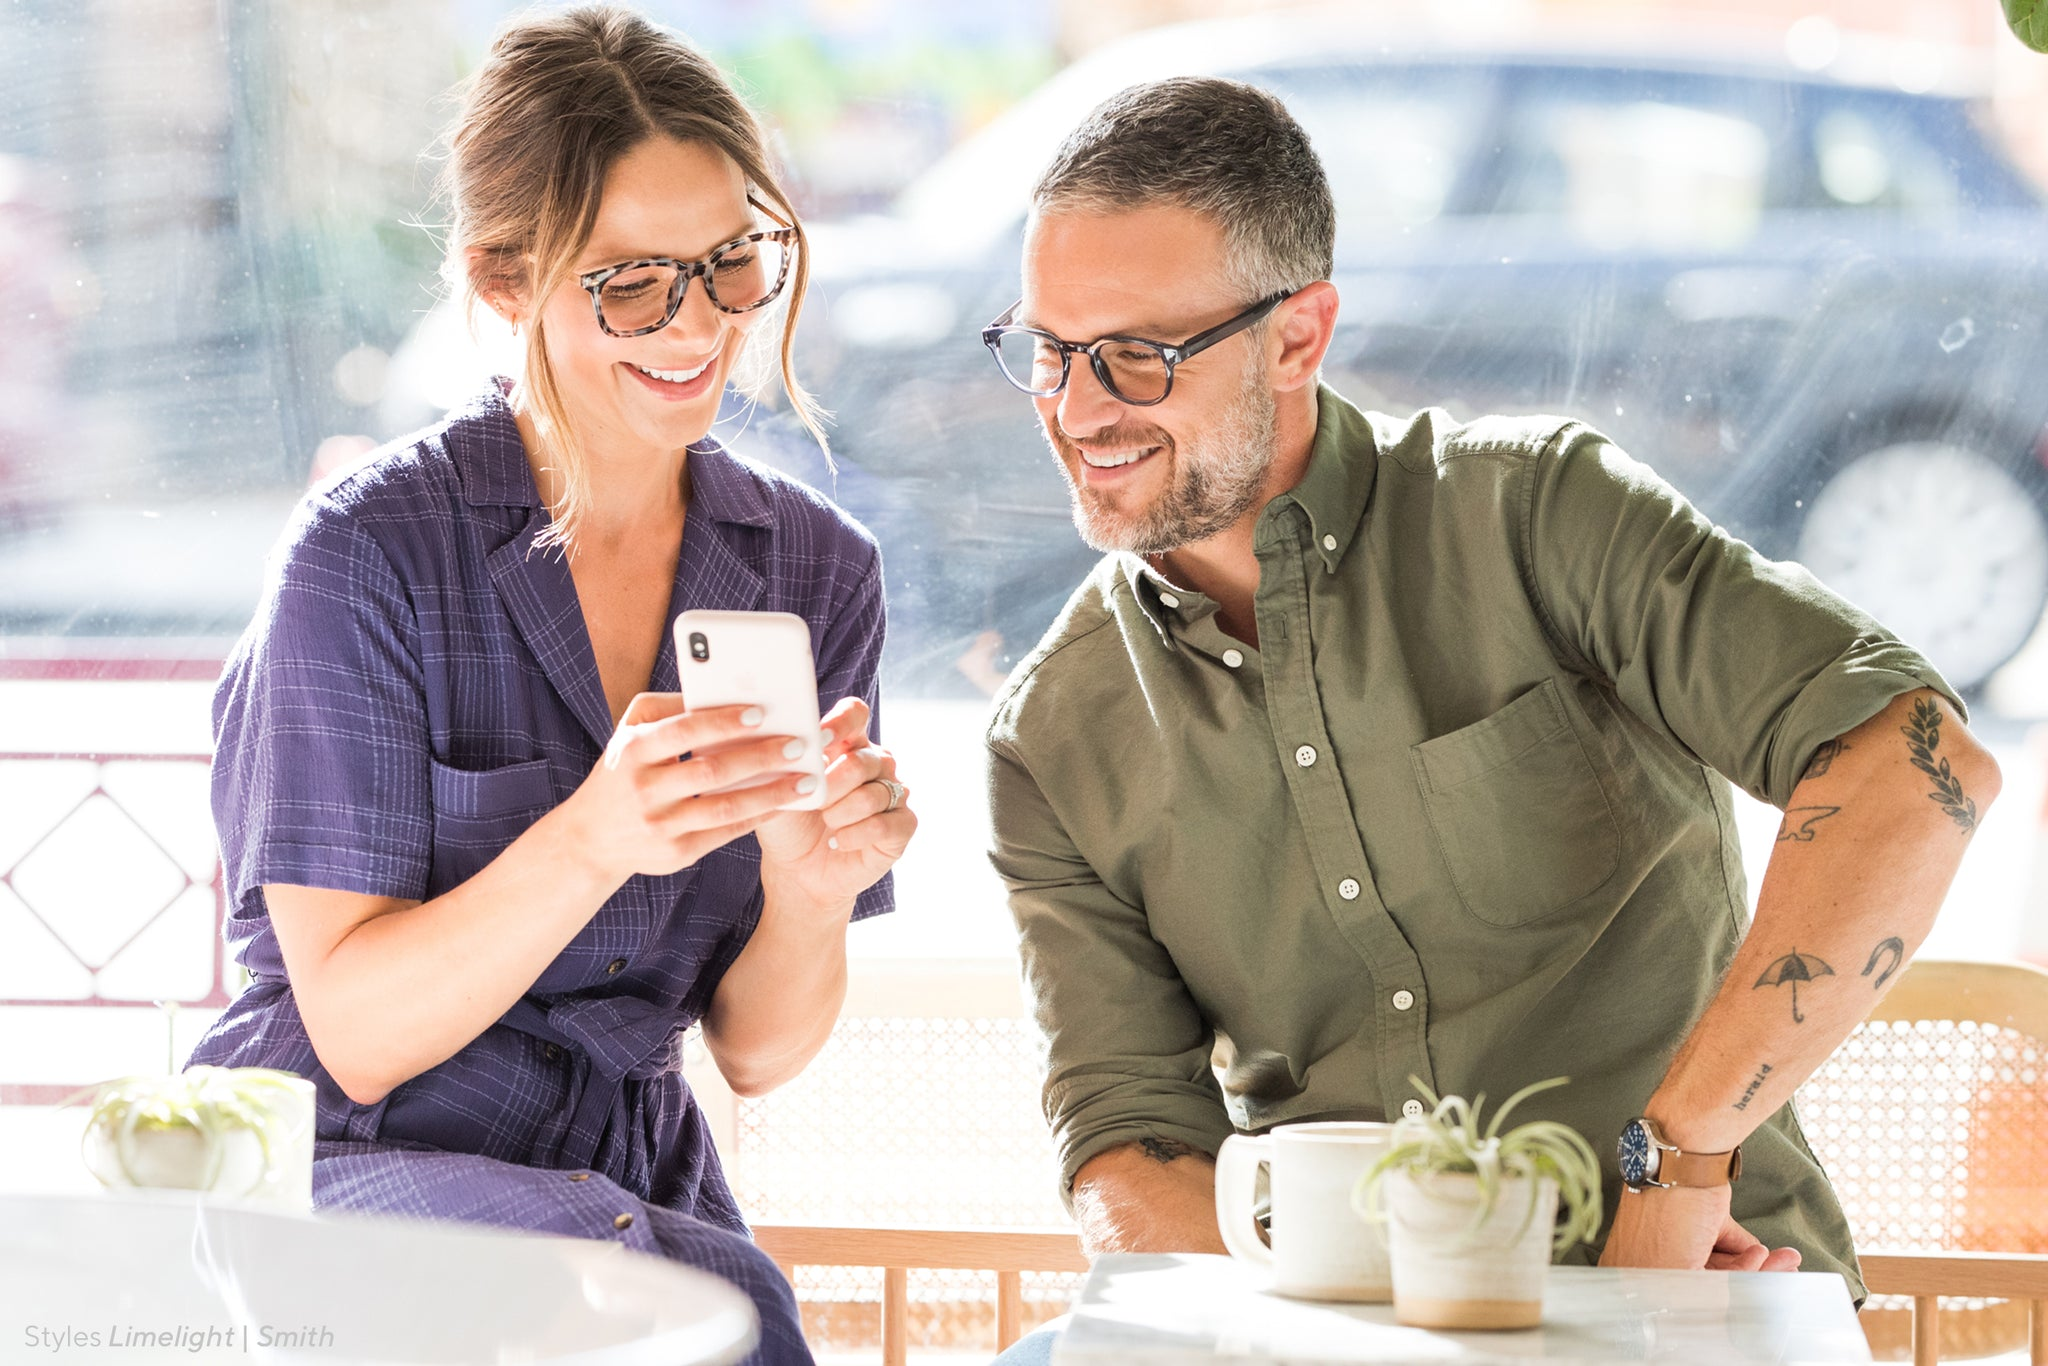 Man and woman looking at a smart phone at a cafe in front of a window wearing Peepers Limelight and Smith blue light reading glasses